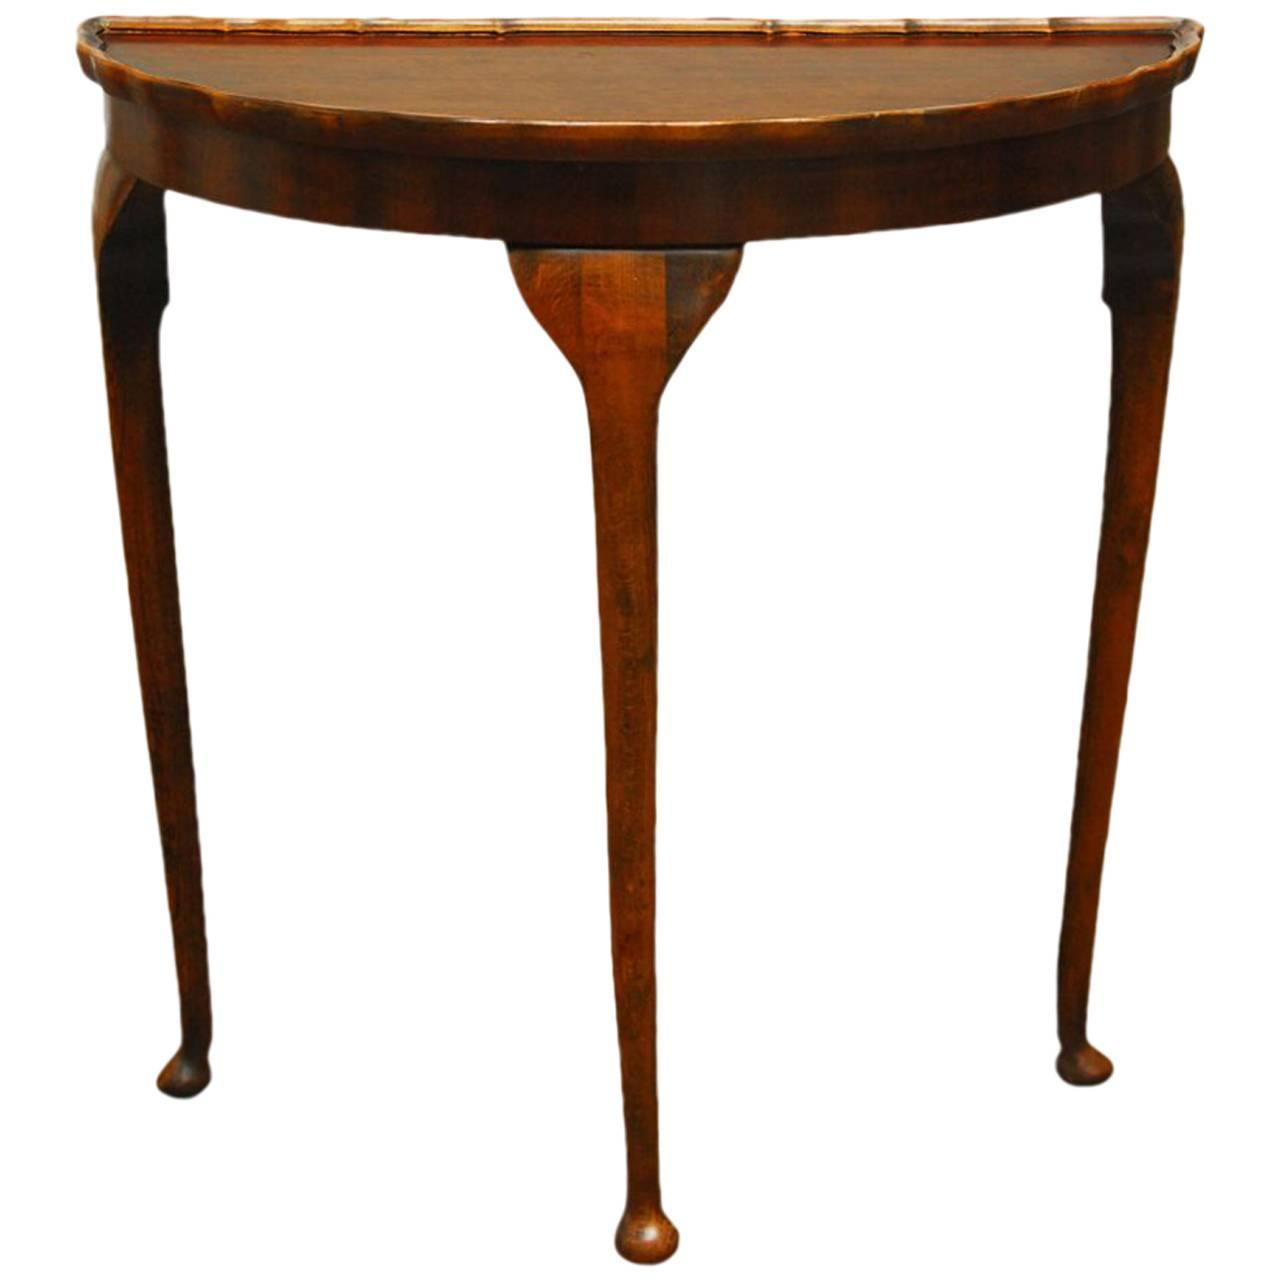 english george ii mahogany demilune table at 1stdibs. Black Bedroom Furniture Sets. Home Design Ideas